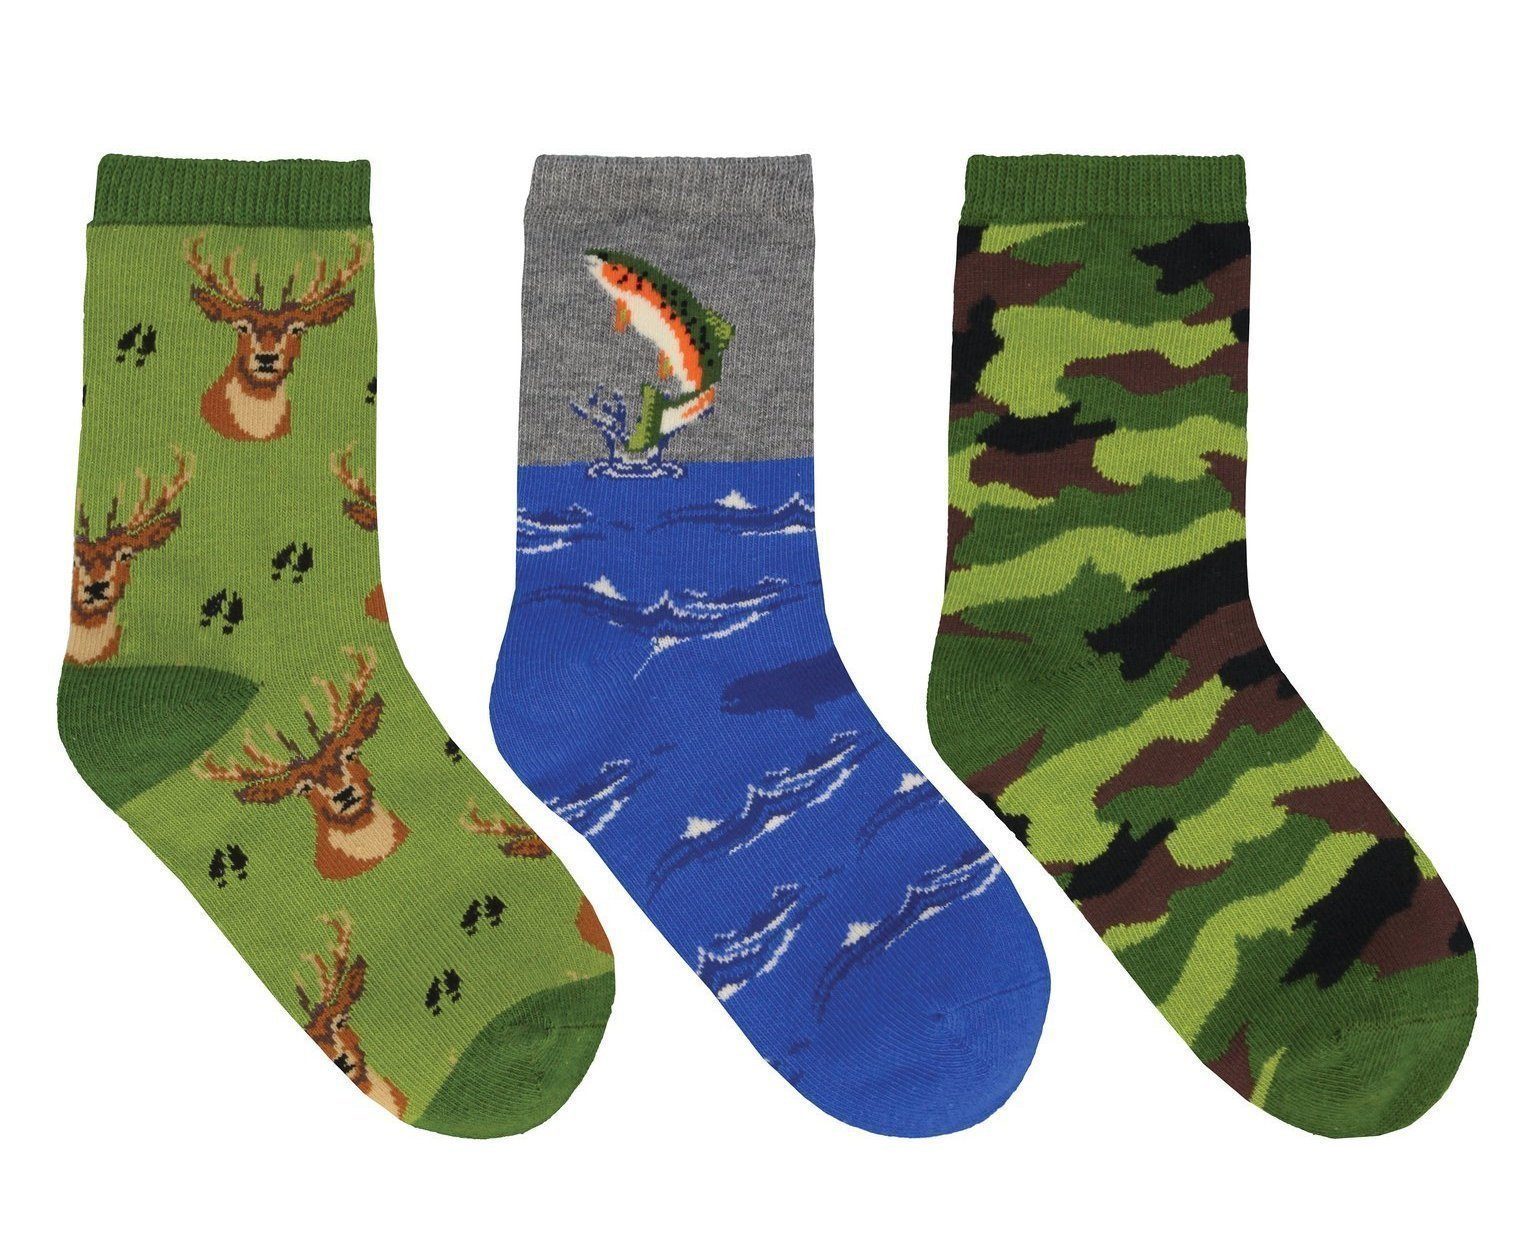 Socksmith - The Great Outdoors 3-pack Crew Socks | Kids' - Knock Your Socks Off